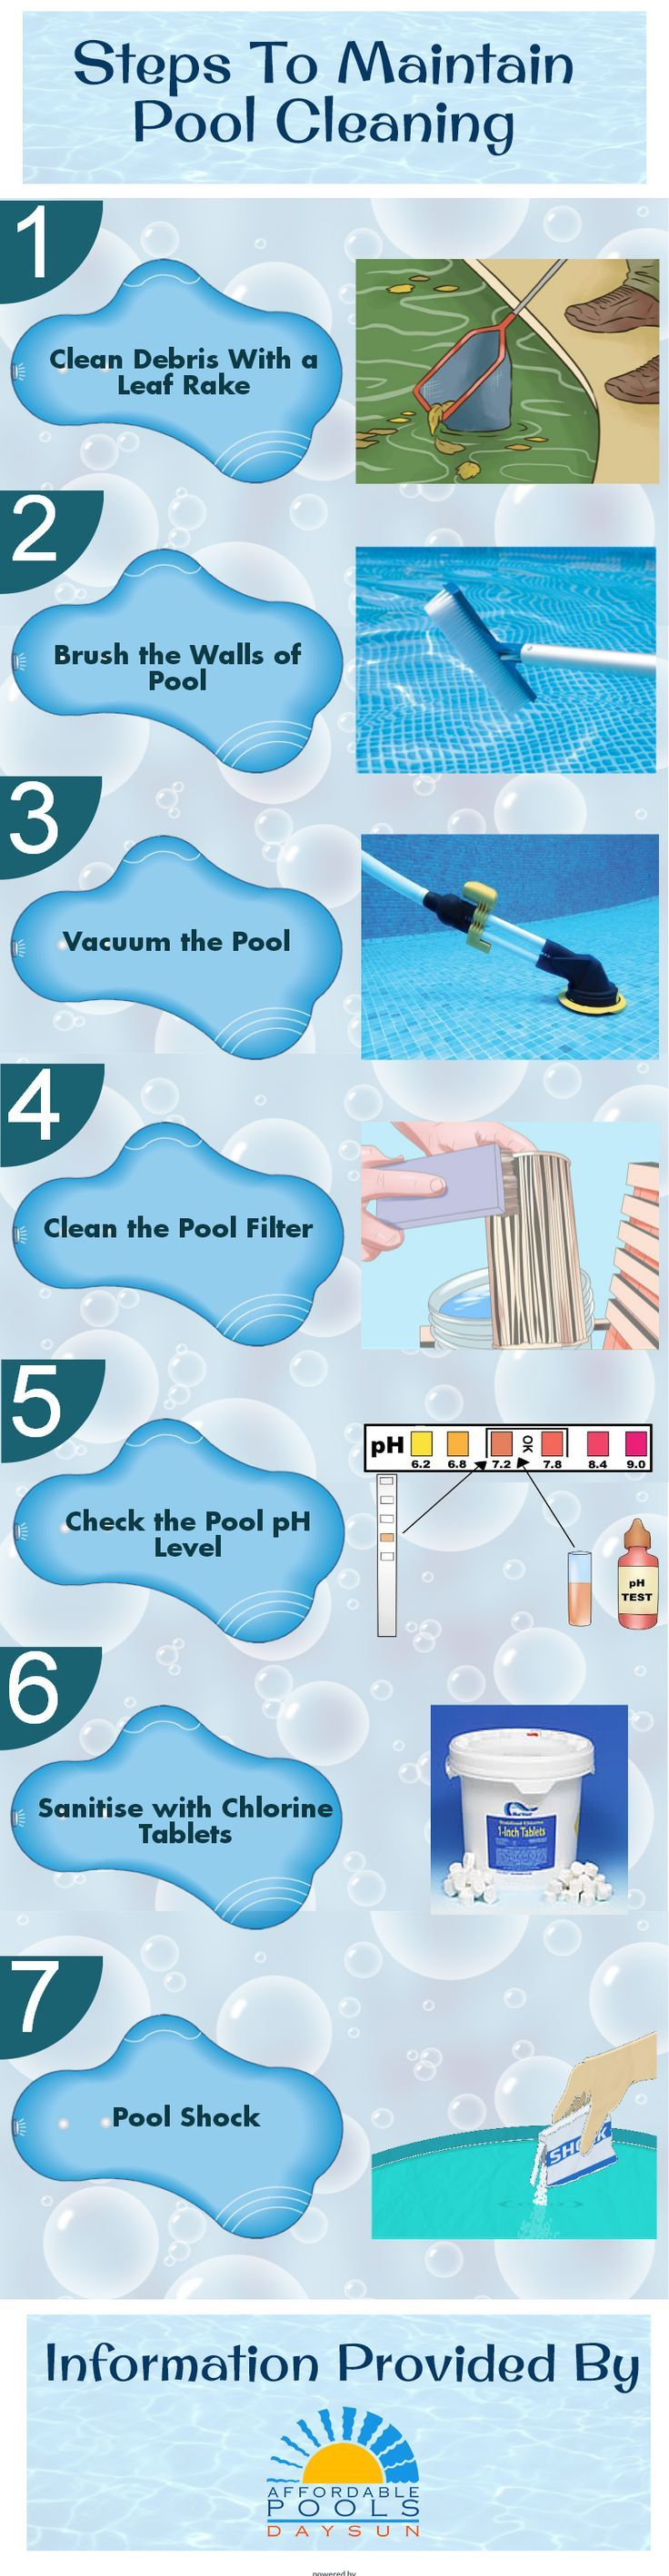 Coupon for swimming pools etc